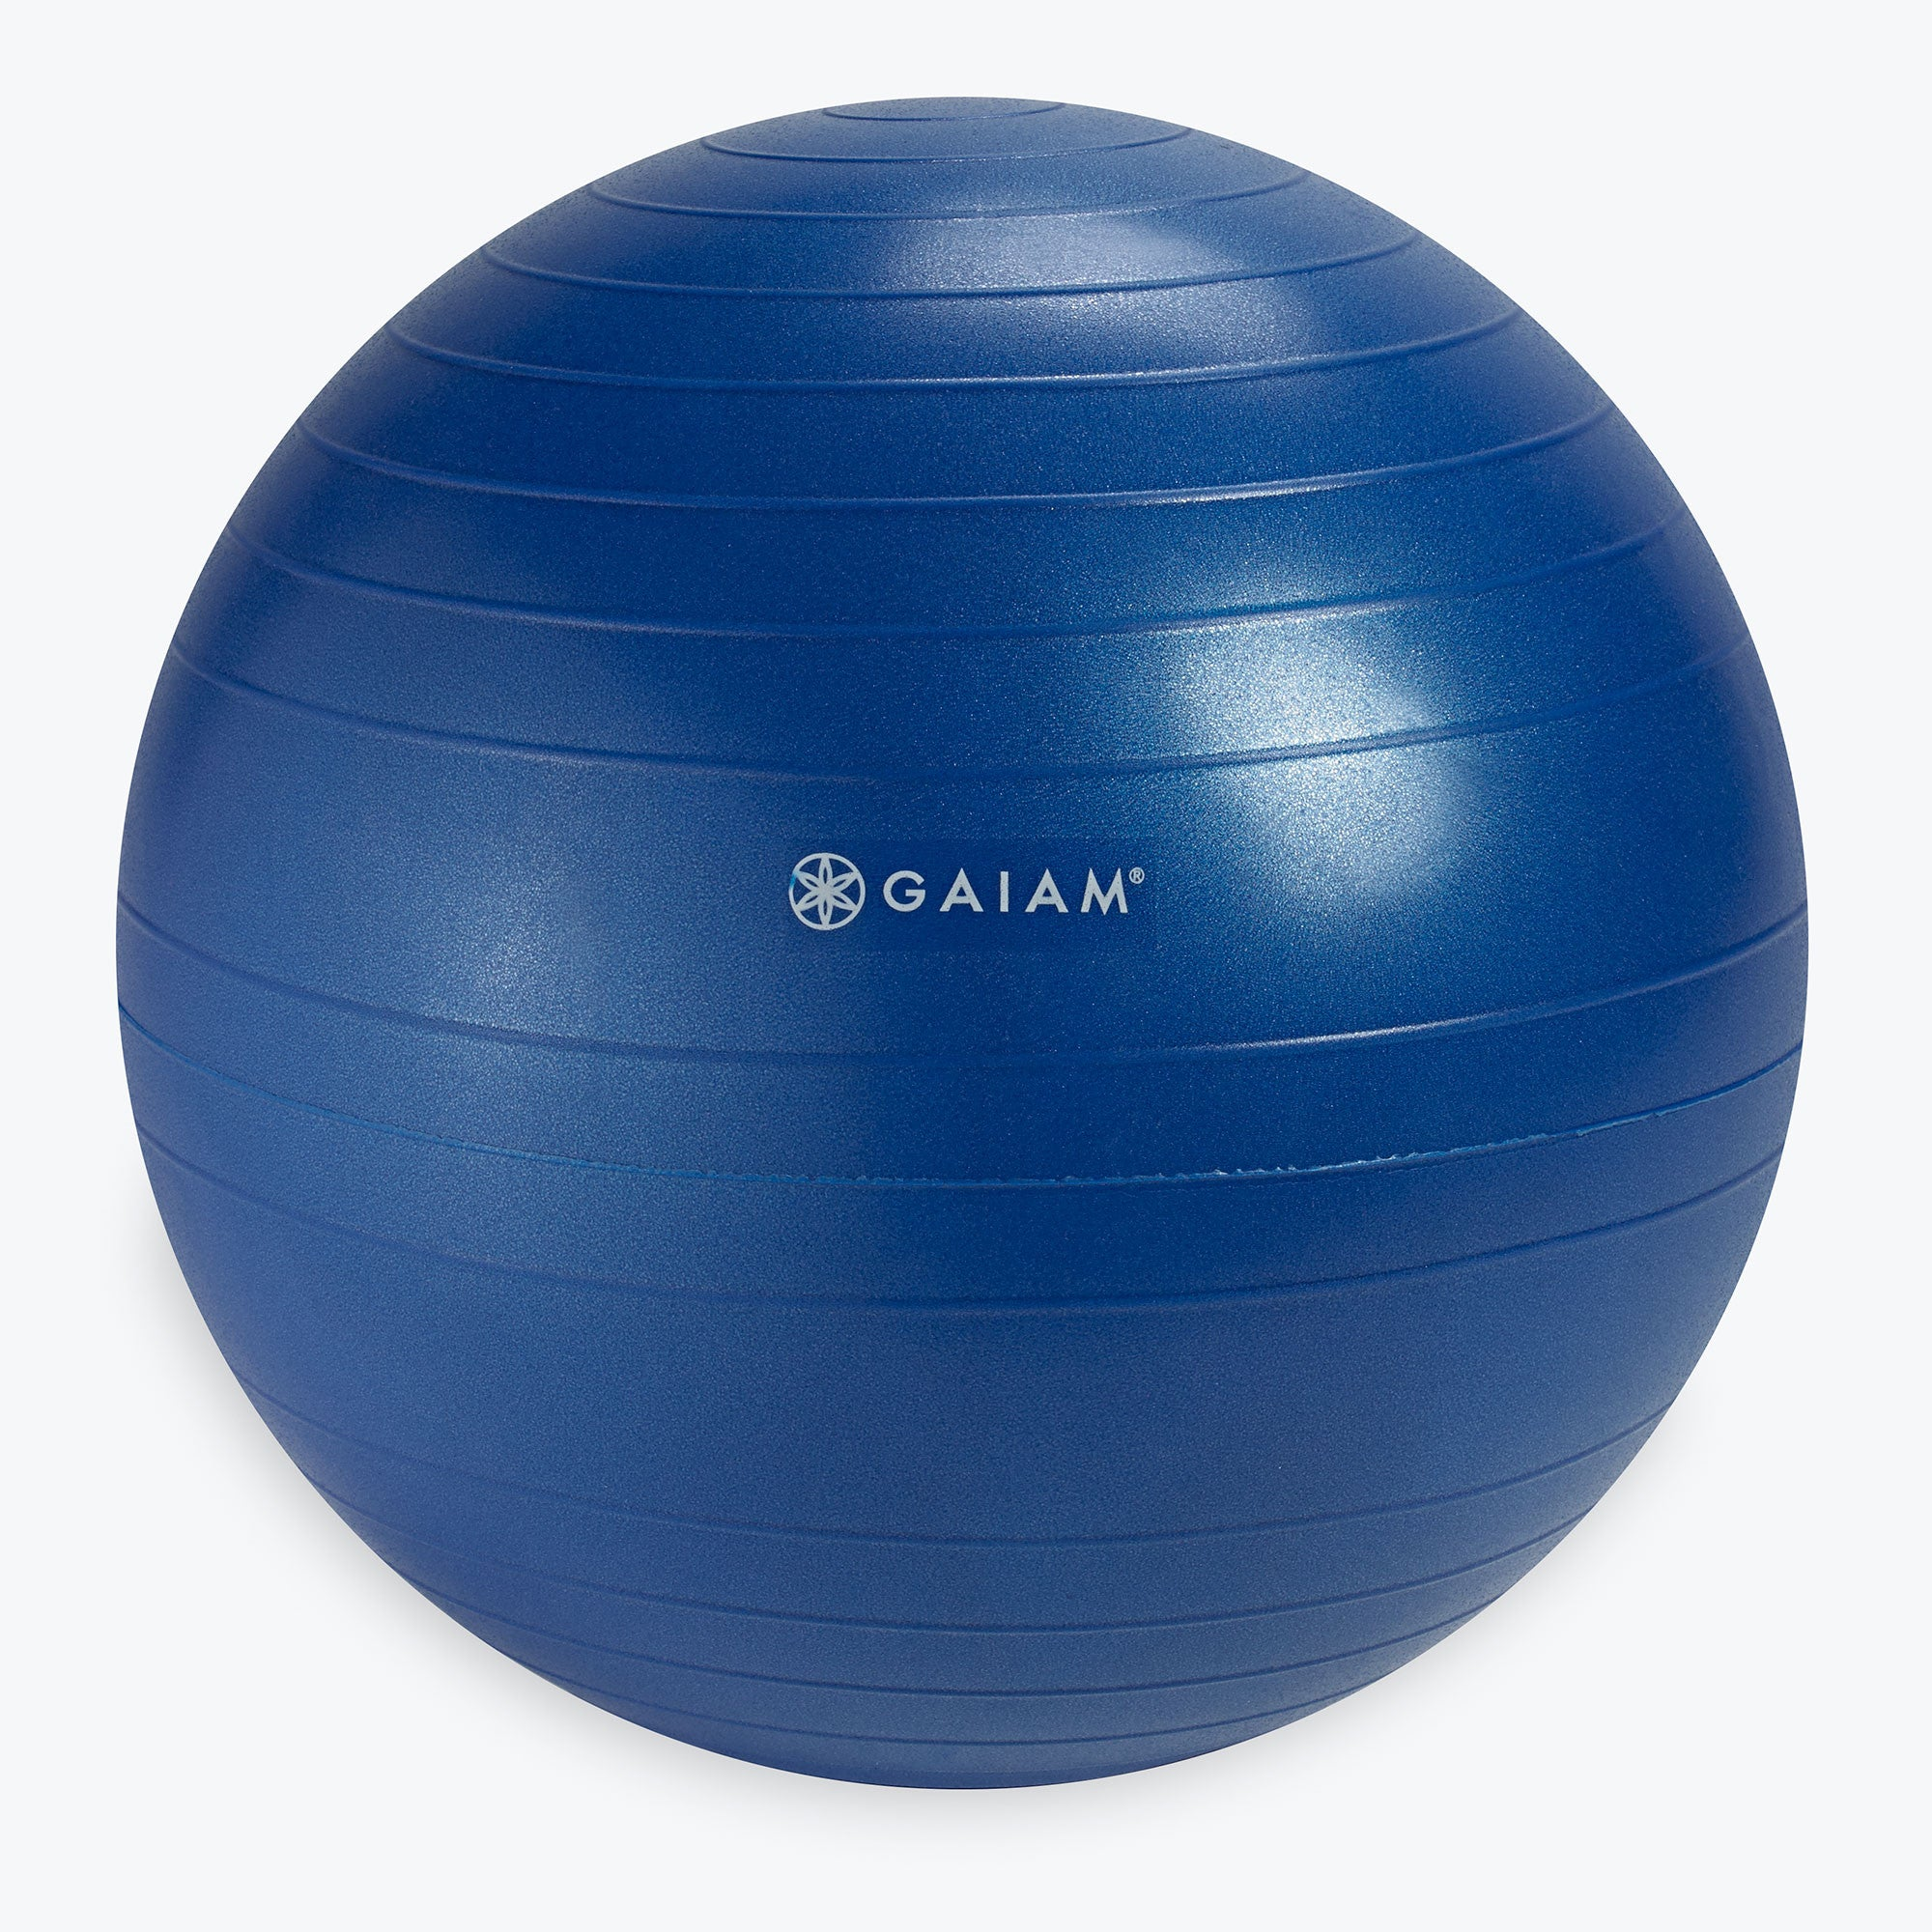 Gaiam Extra Ball for the Classic Balance Ball® Chair (52cm)